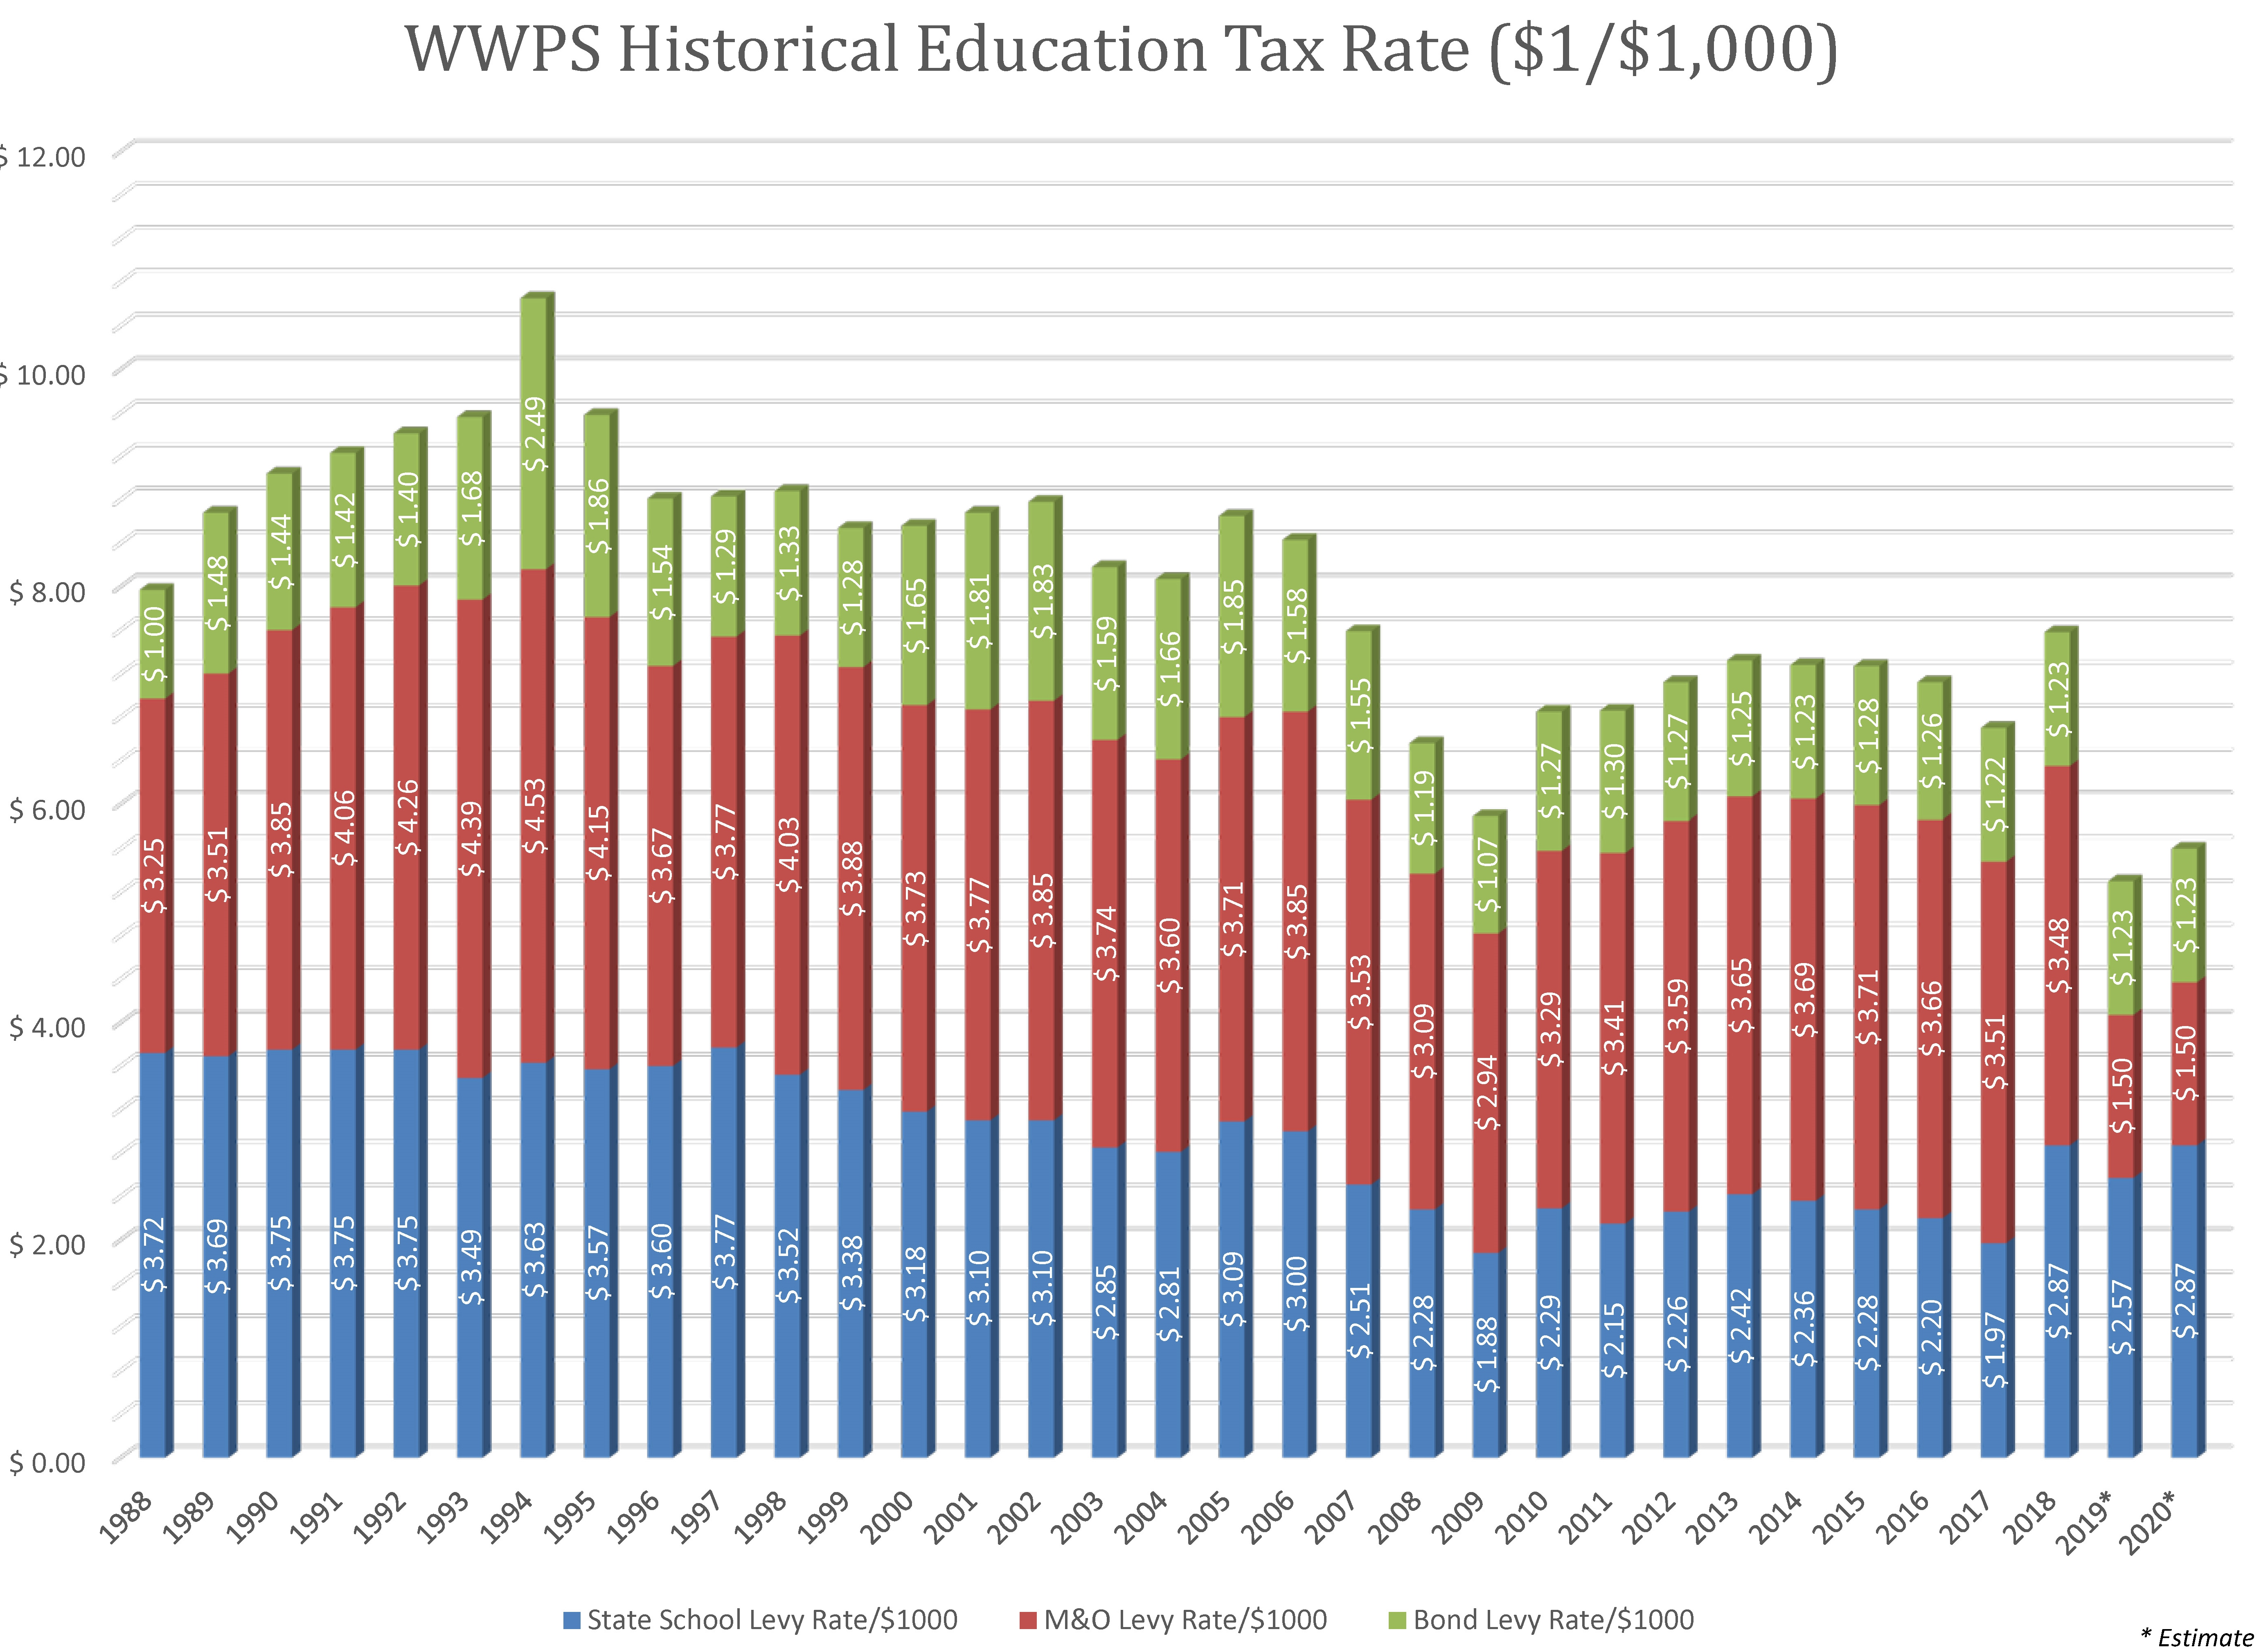 Walla Walla School District Historical Tax Rates 1988-2018